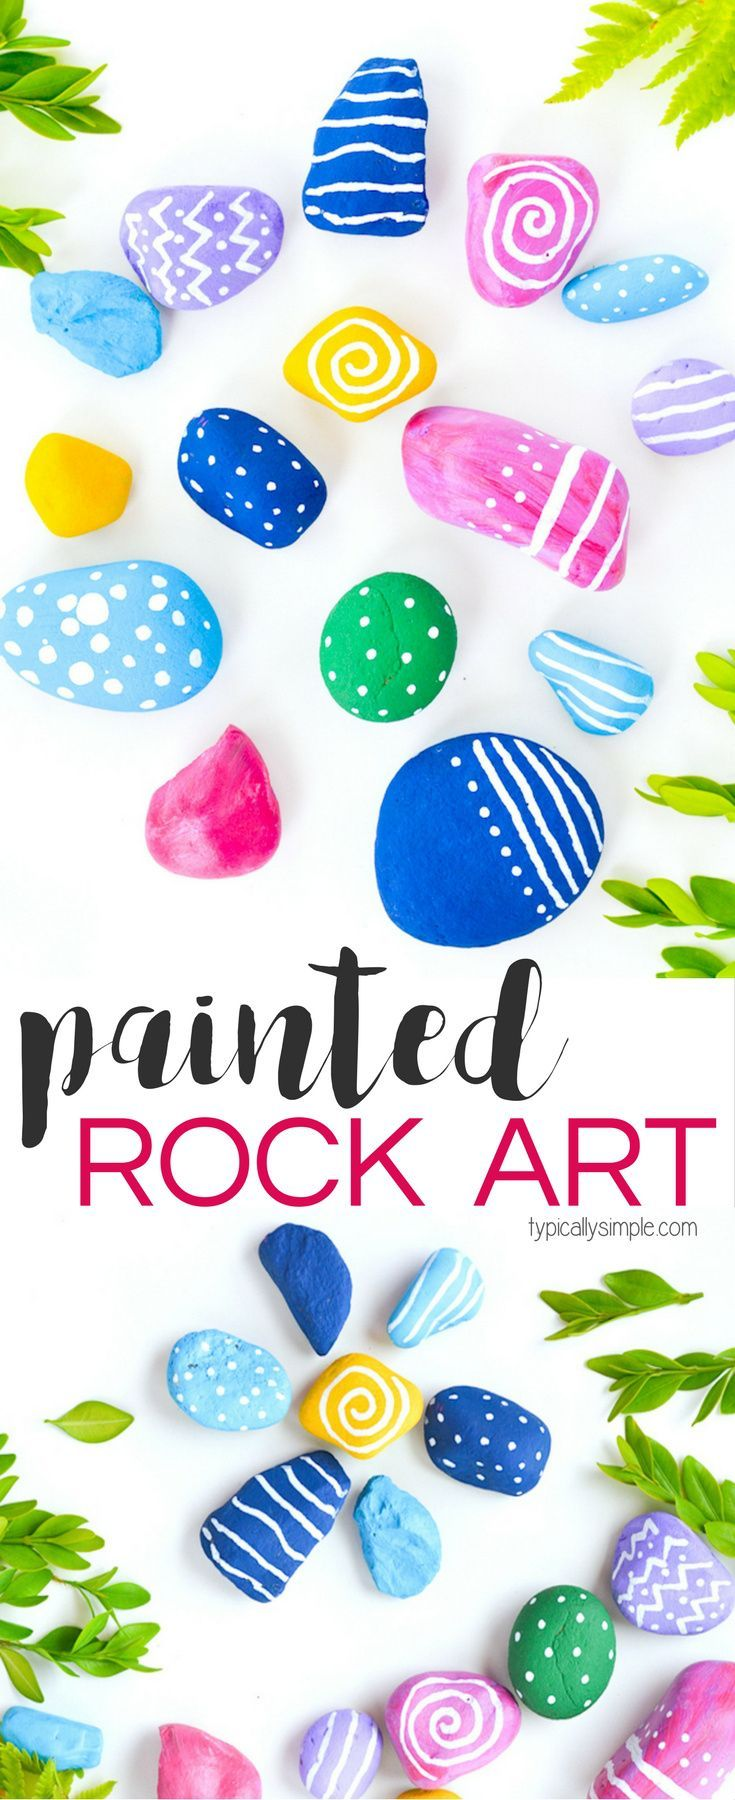 Get creative with this painted rock art project. This is the perfect craft for kids when camping, at the cabin, or just in the backyard!